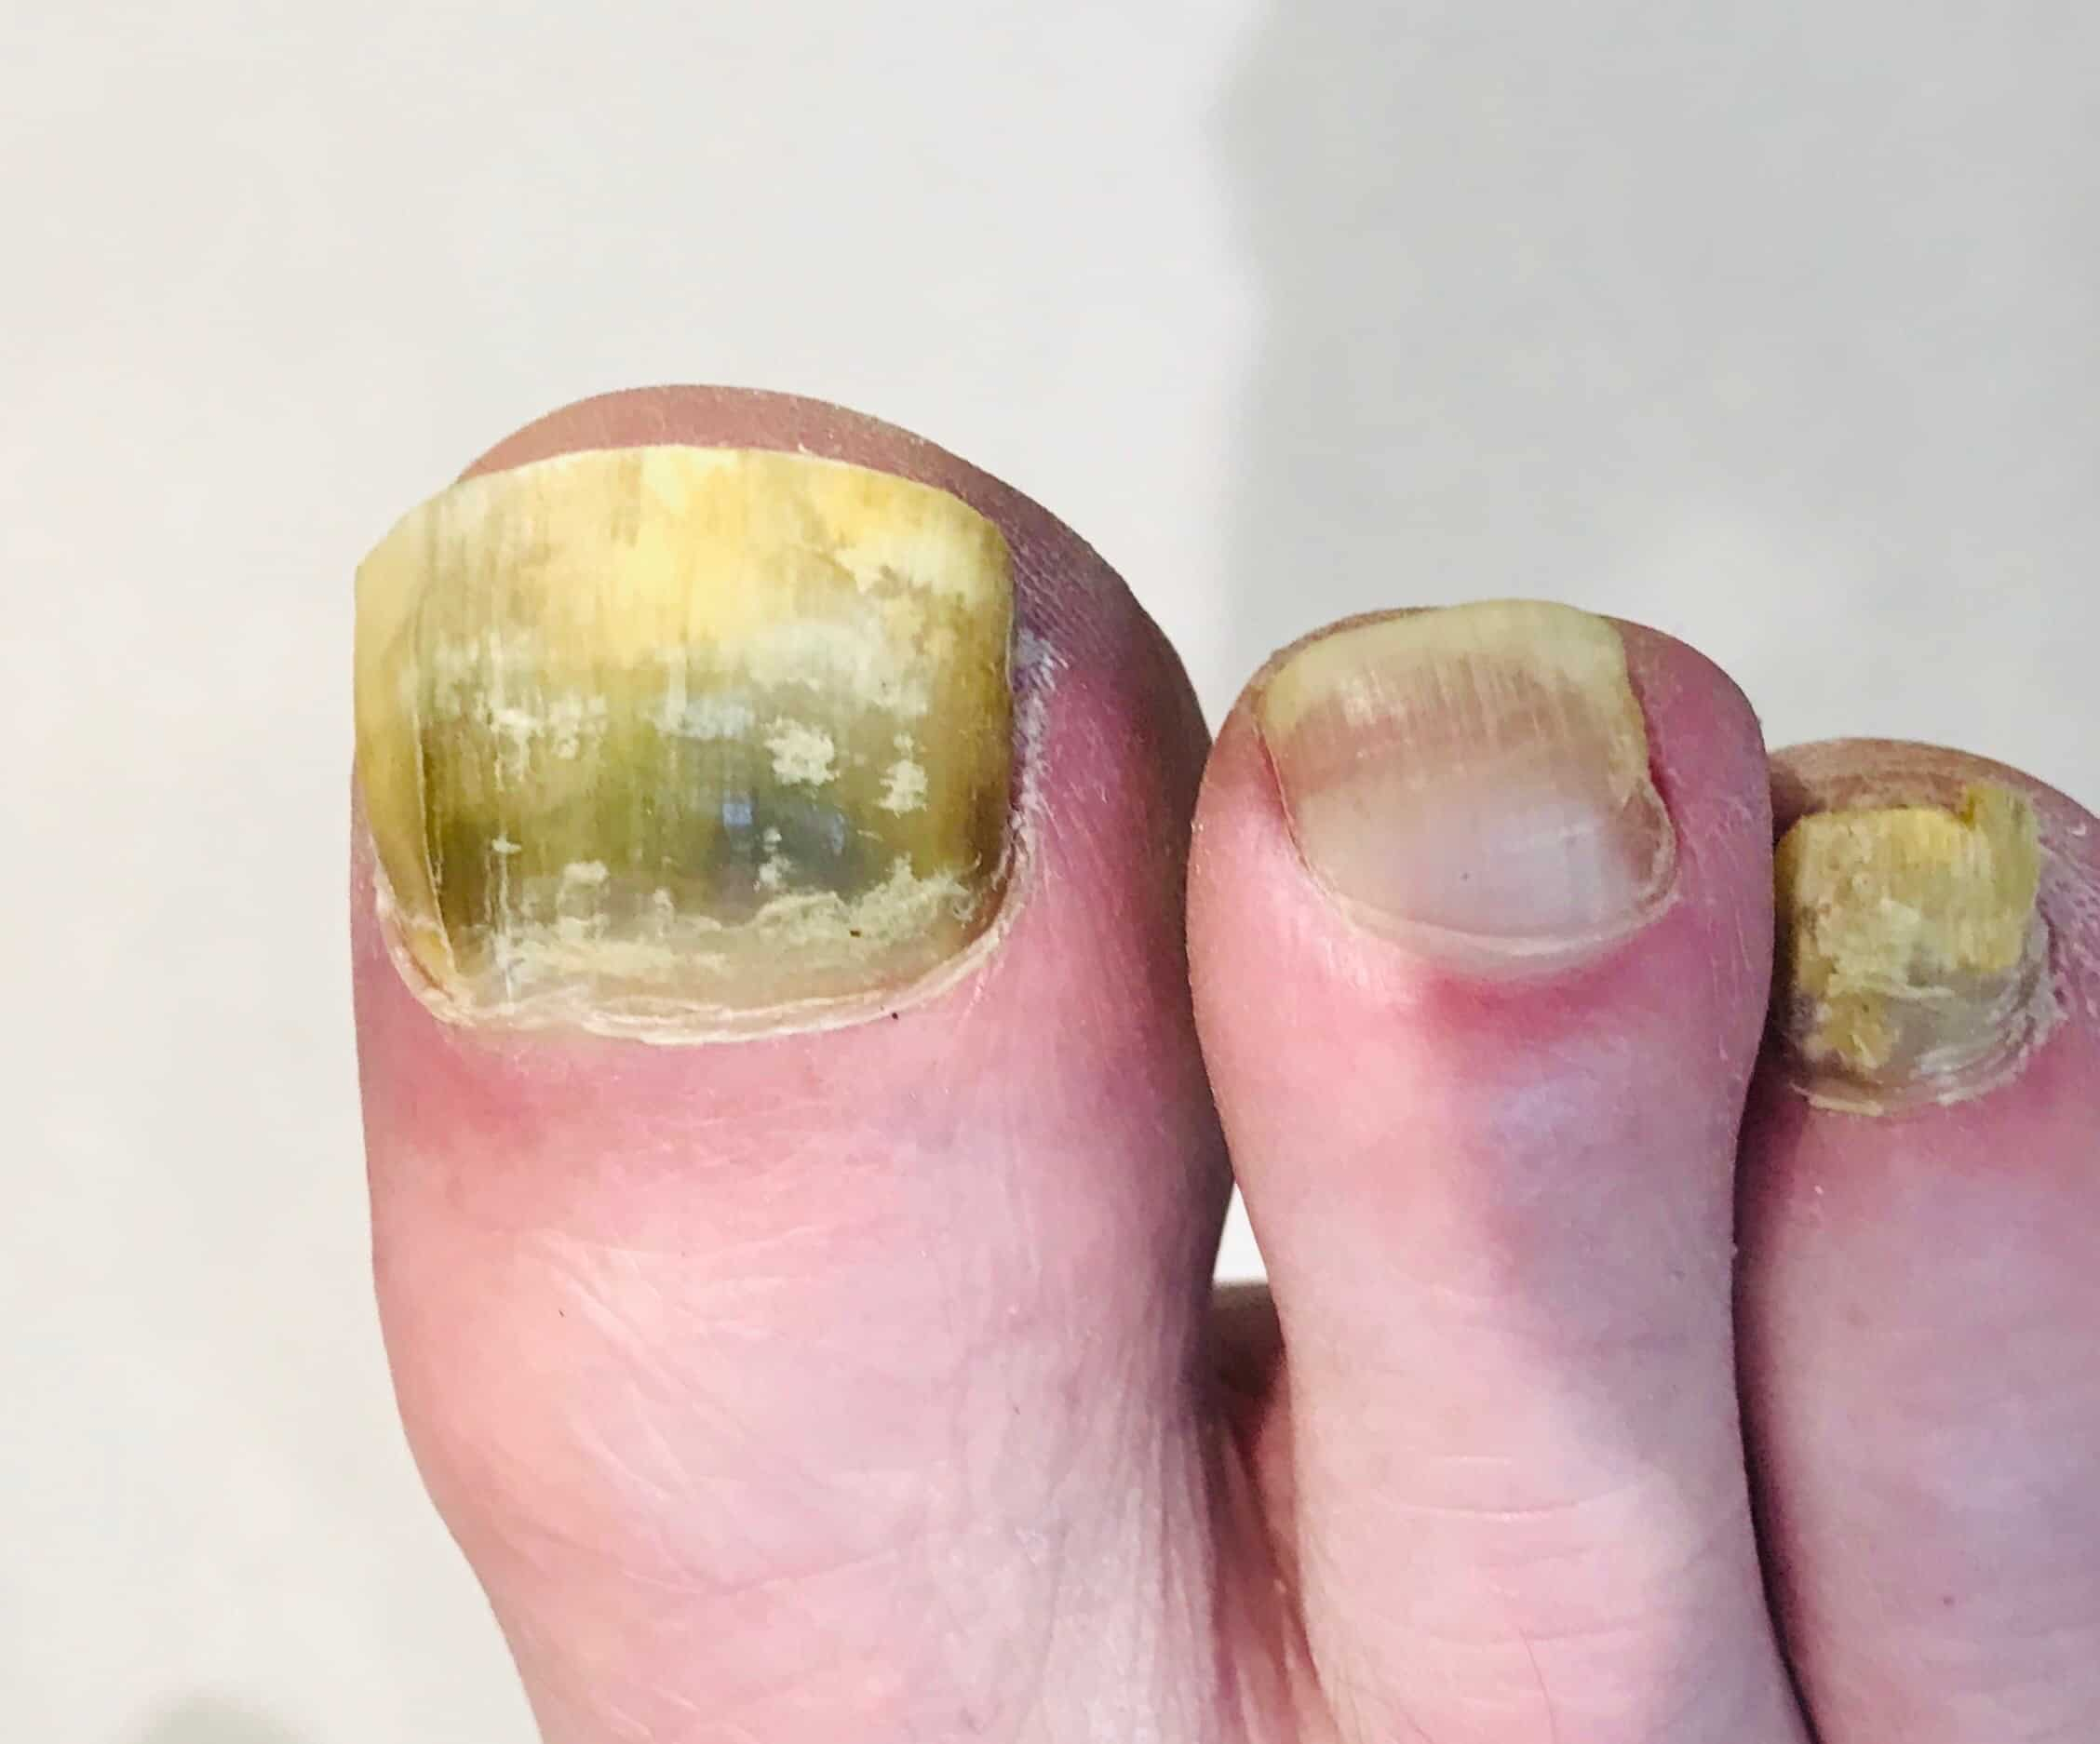 Fungal Nail Infection - 6 Questions Answered